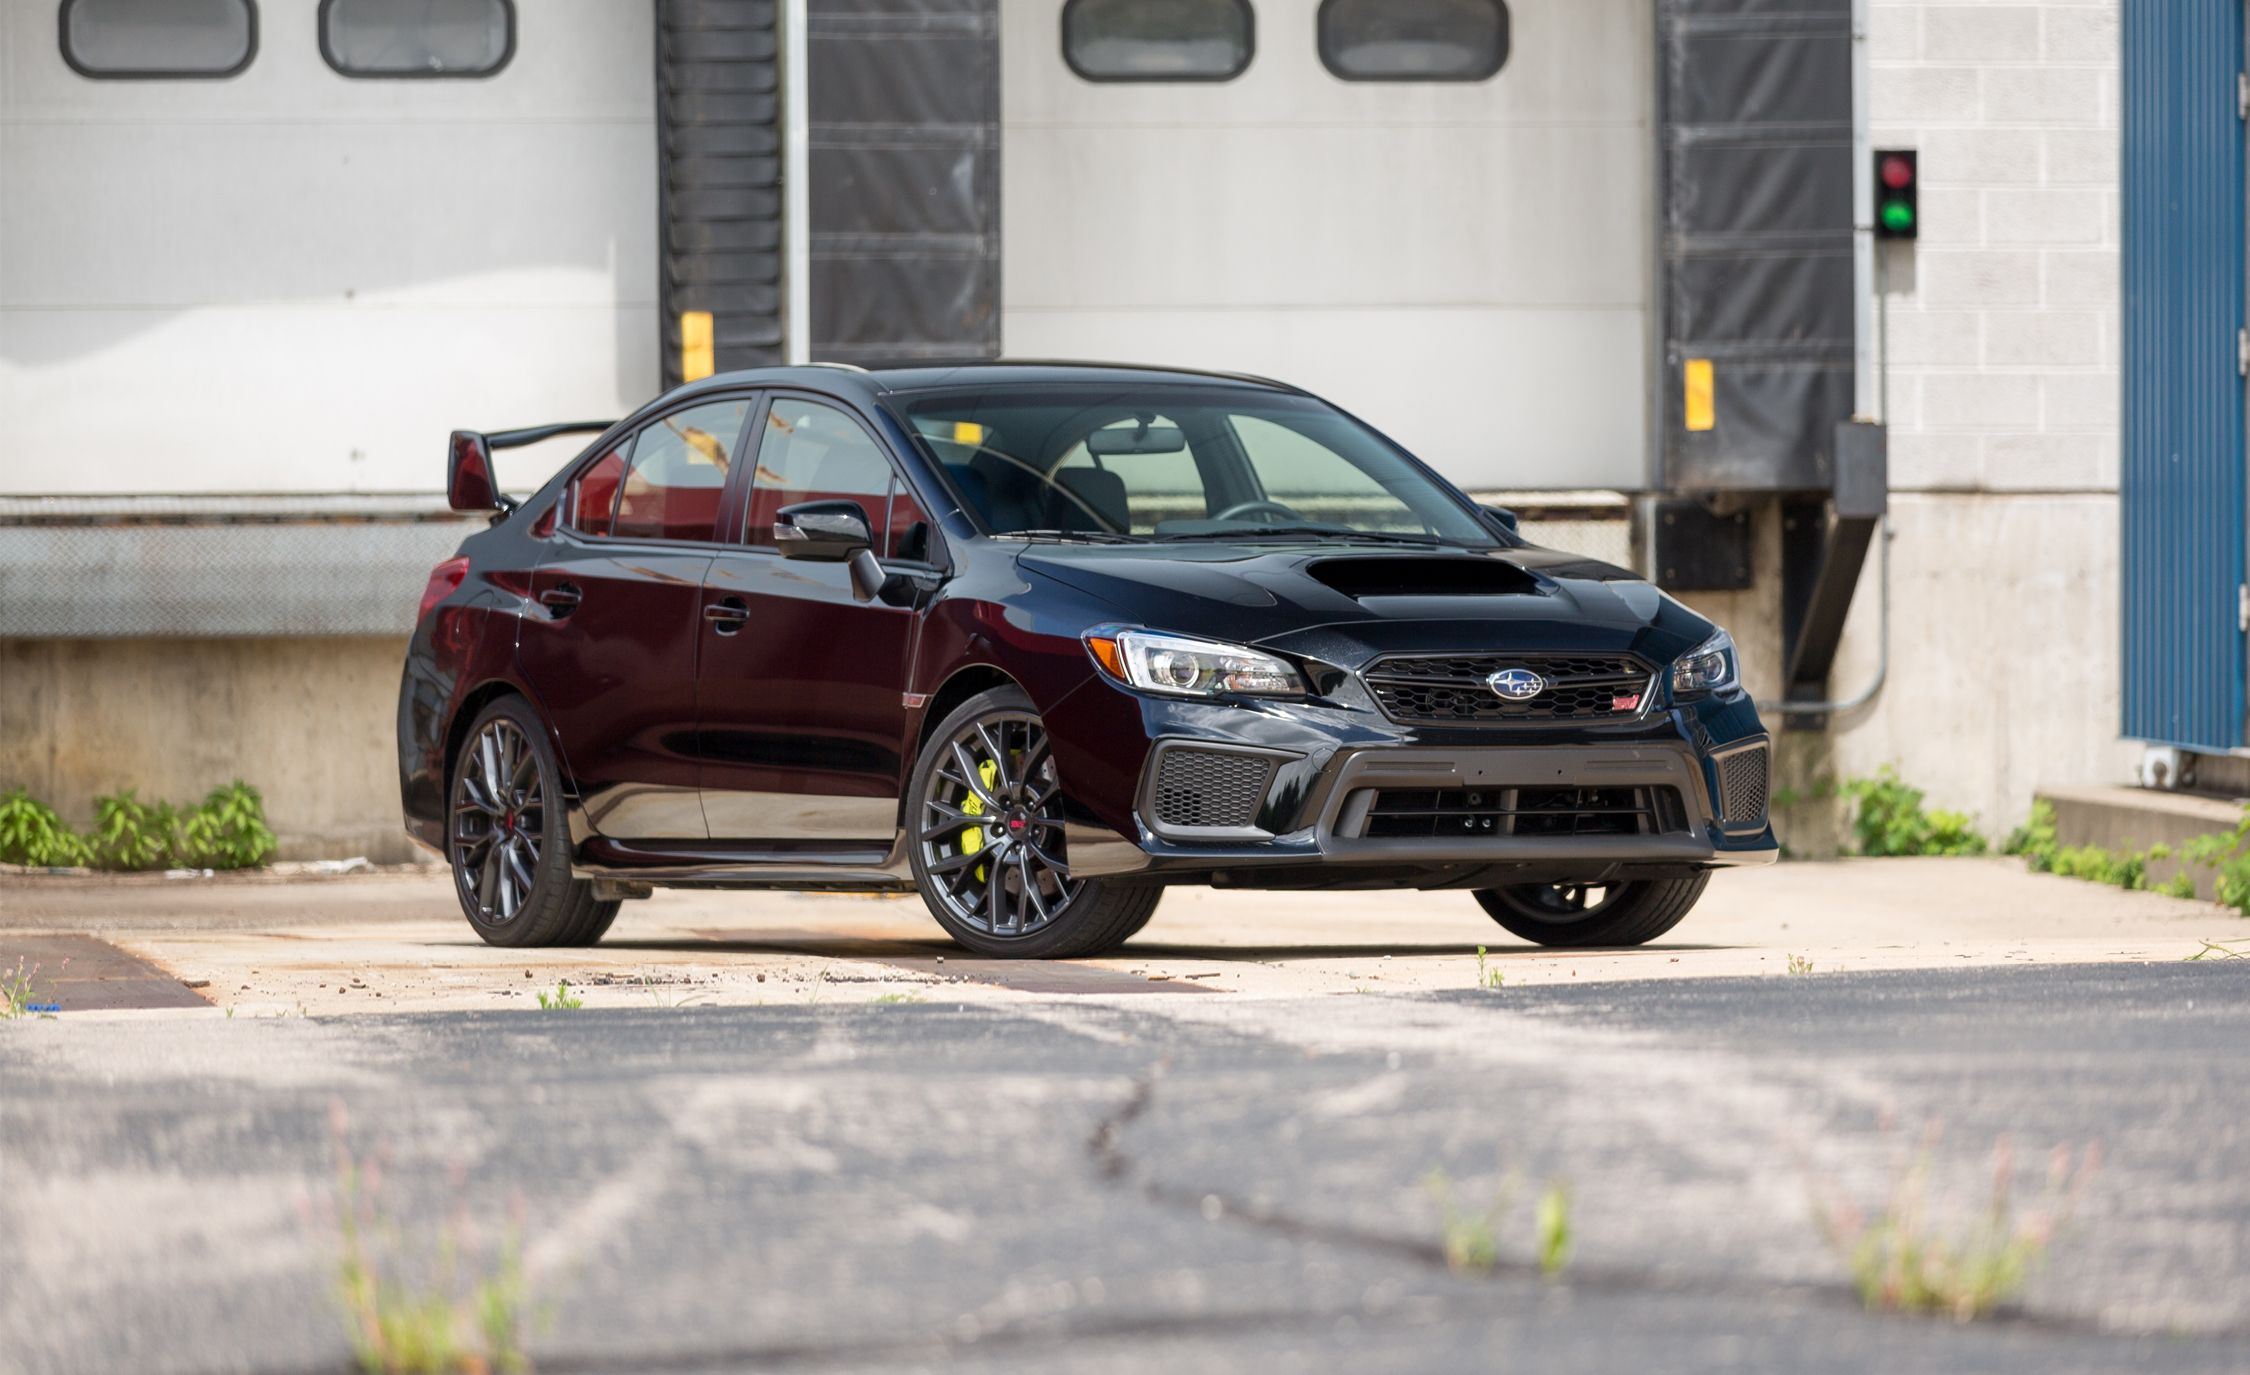 2018 Subaru WRX STI | In-Depth Model Review | Car and Driver